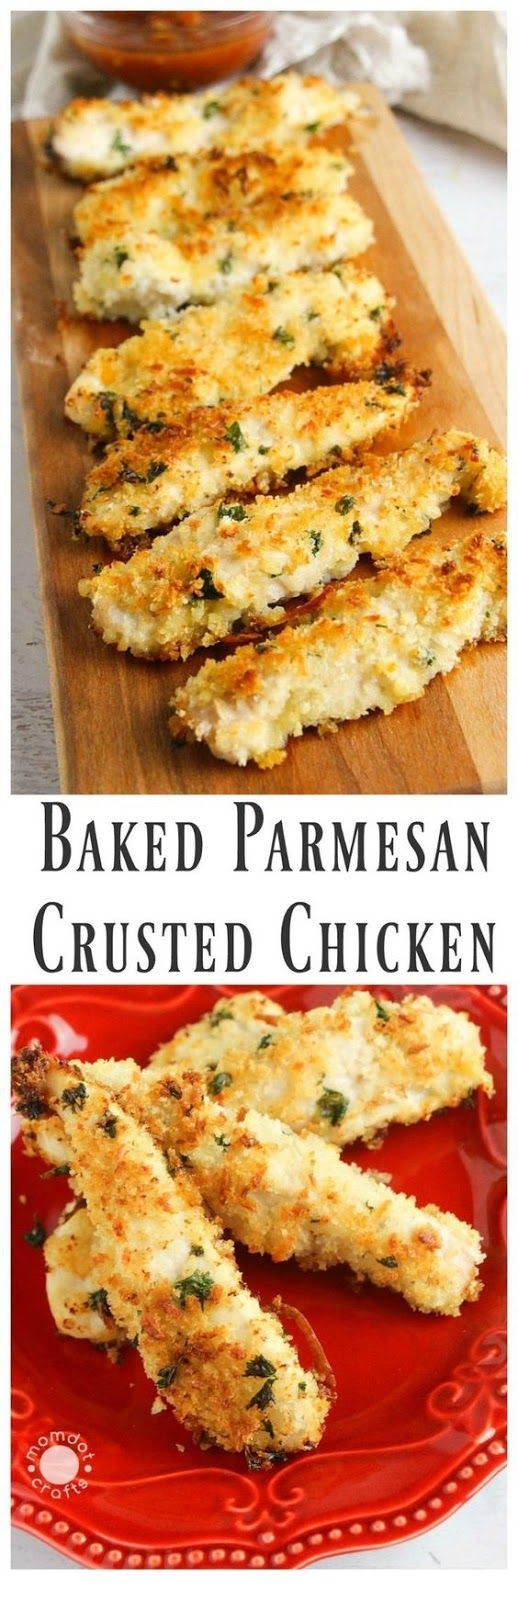 BAKED PARMESAN CRUSTED CHICKEN RECIPE | Karen Food #chickenfoodrecipes #crusted …